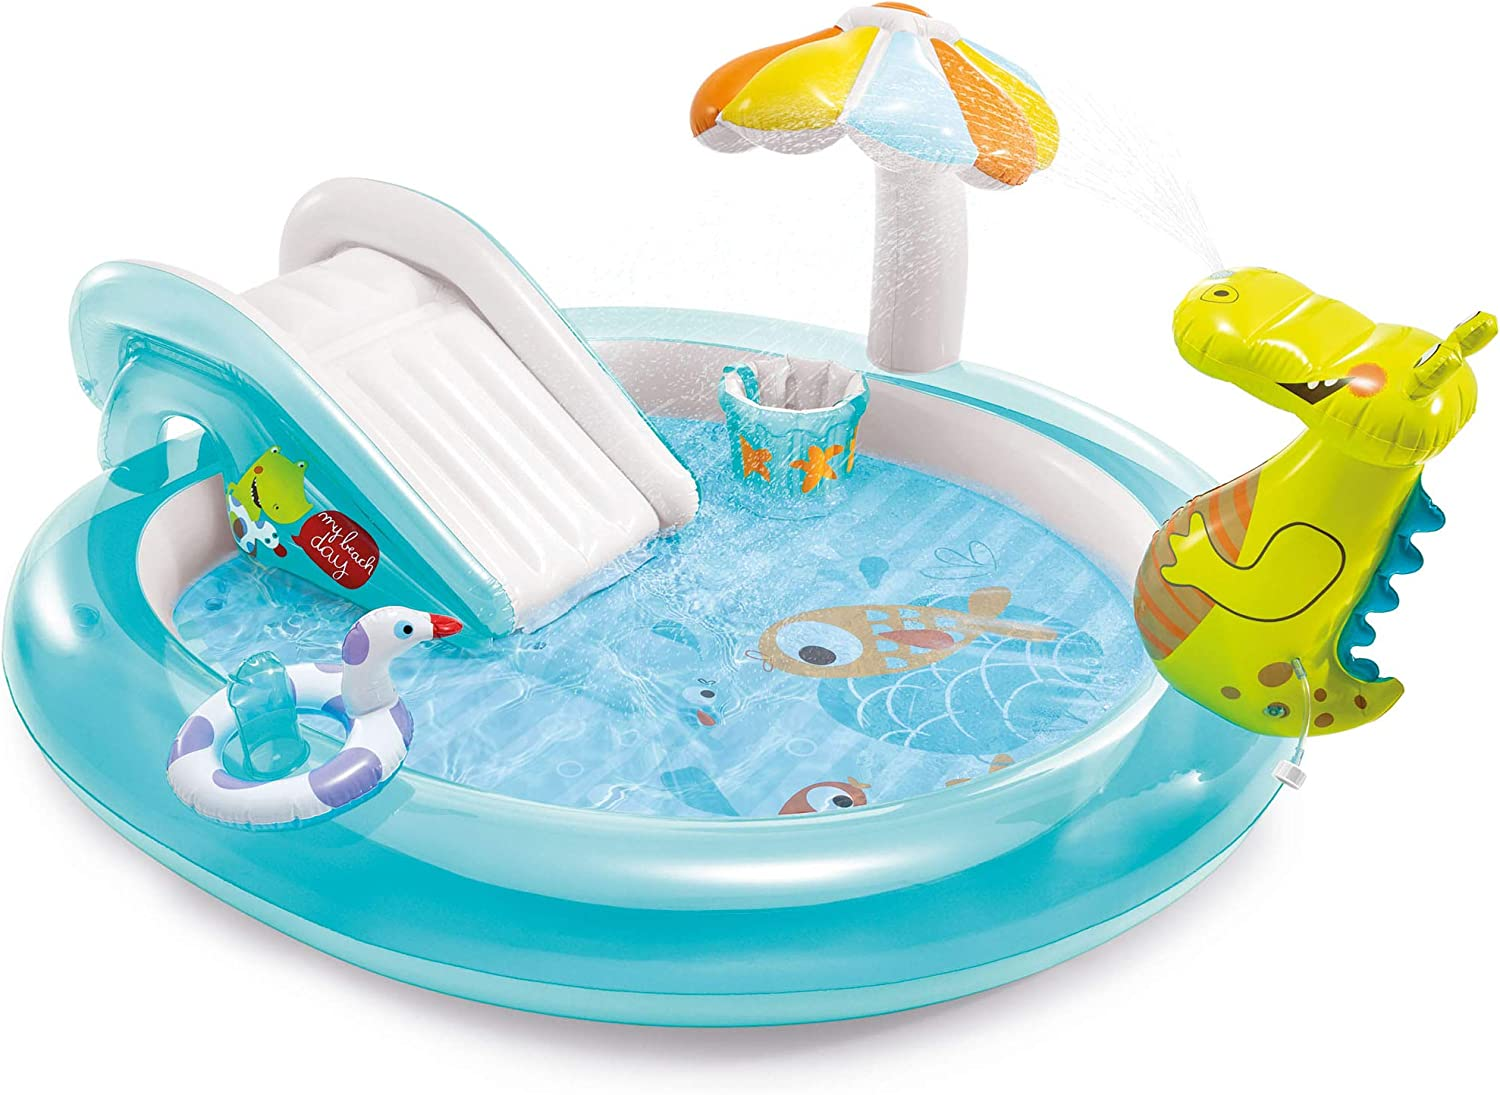 Best Kiddie Pool-Intex Gator Inflatable